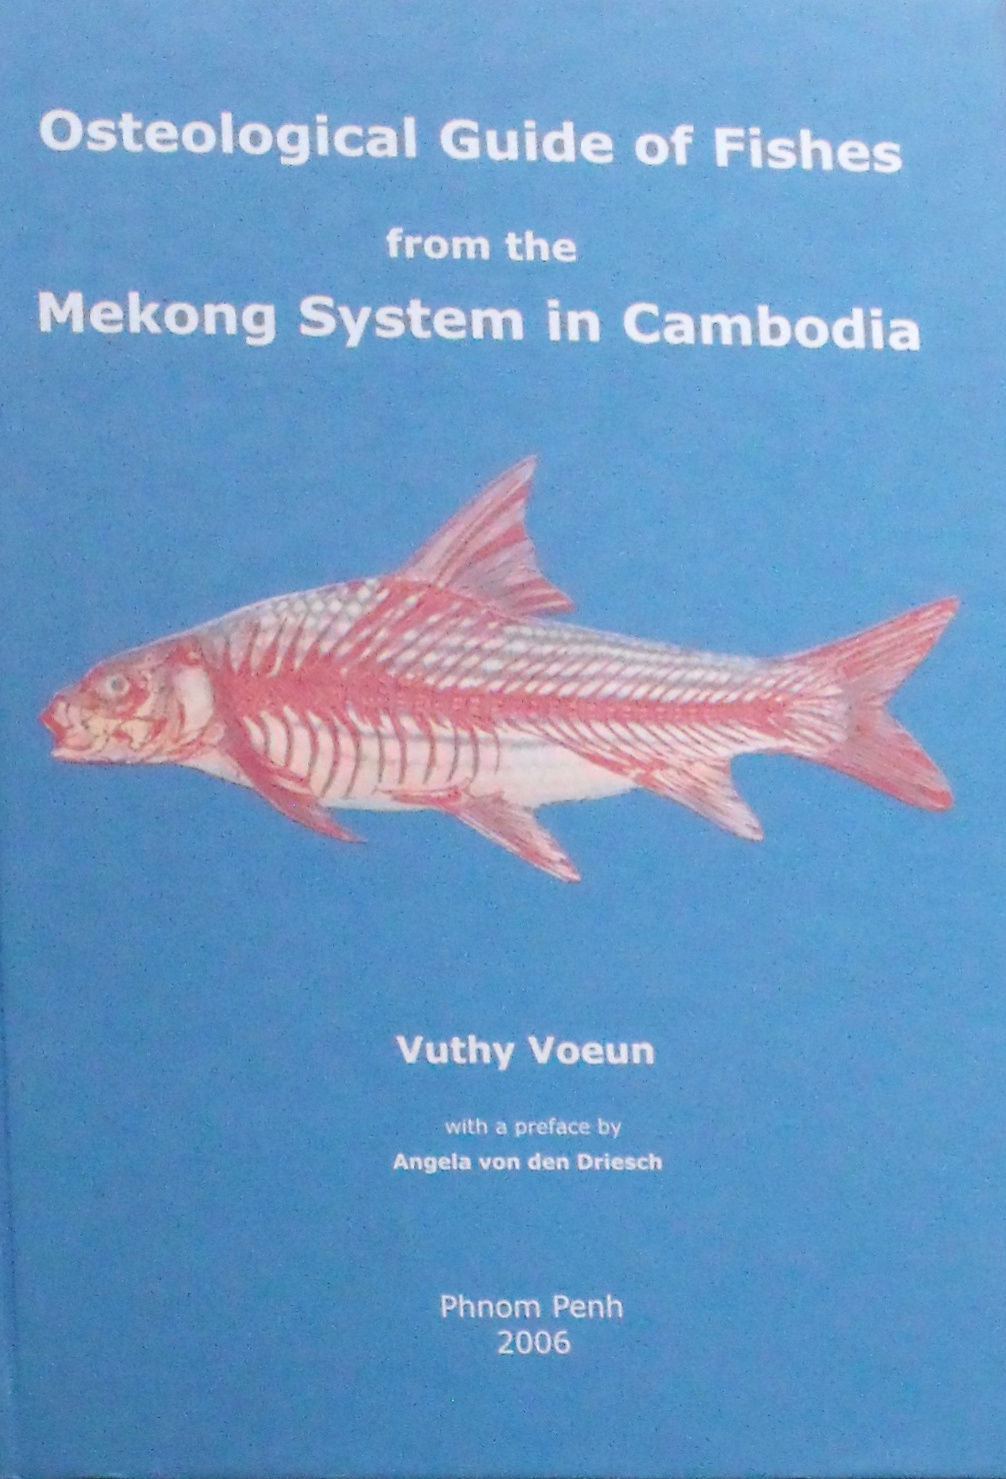 OSTEOLOGICAL GUIDE OF FISHES - Vuthy Voeun